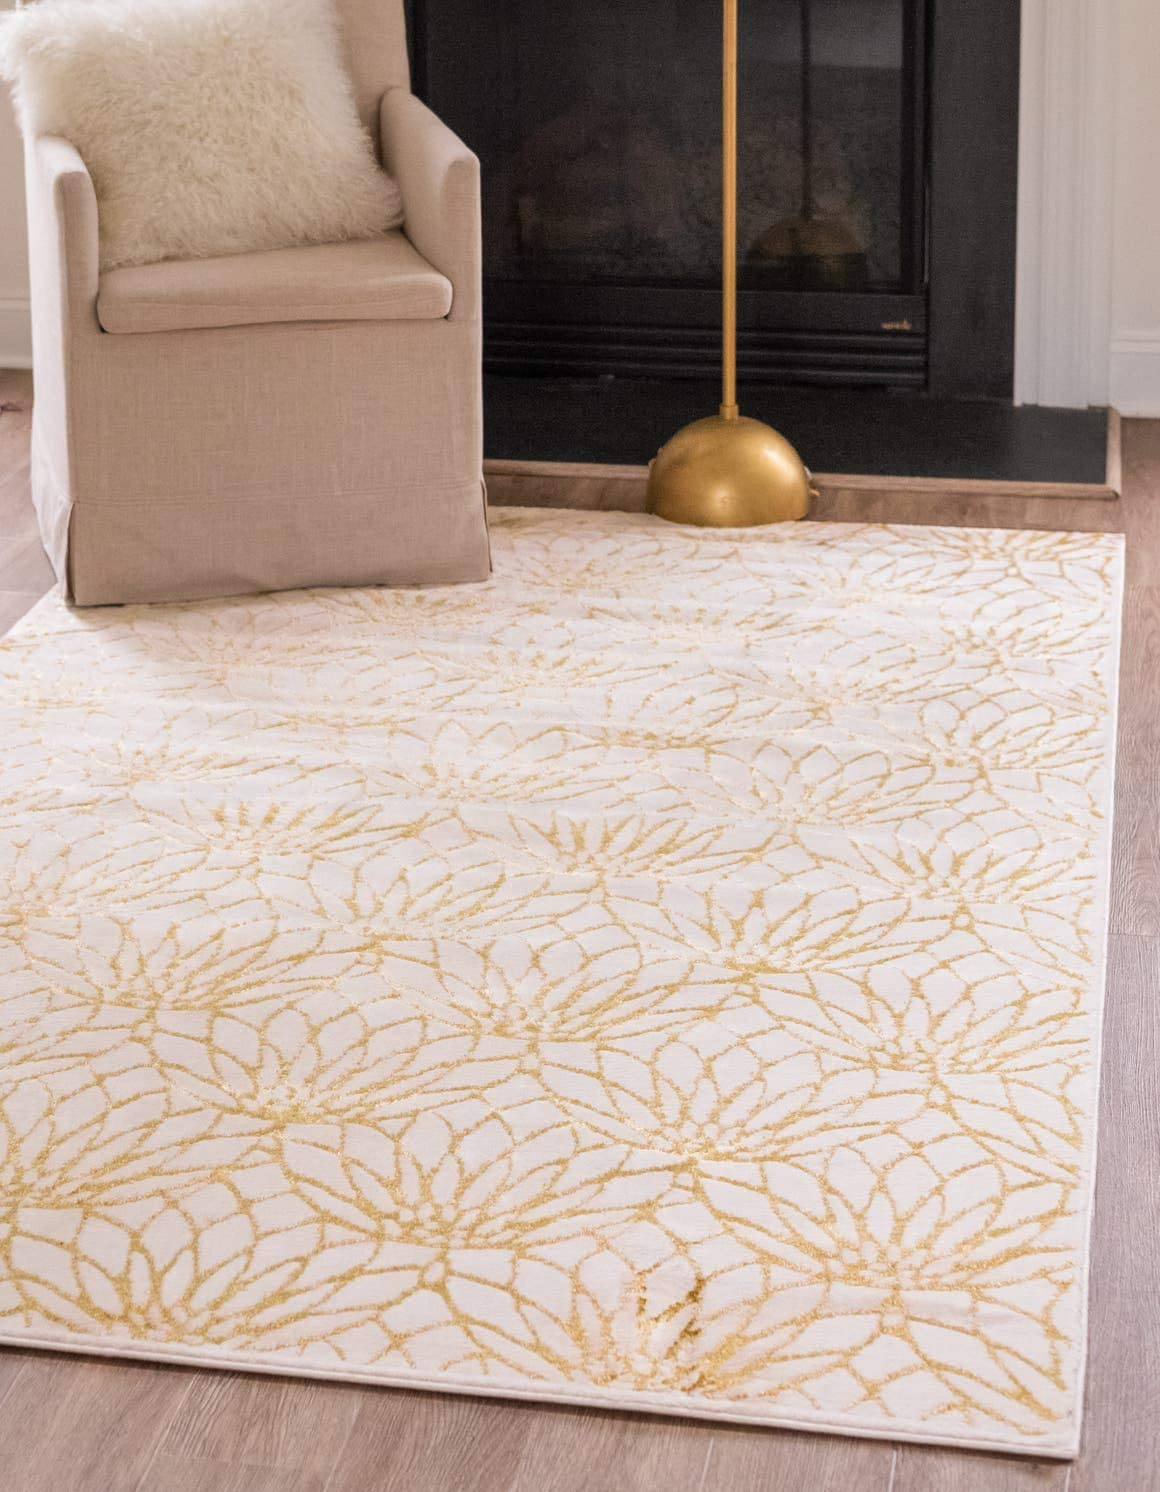 Unique Loom Marilyn Monroe Glam Collection Textured Lotus Floral White Gold Area Rug 2 0 x 3 0